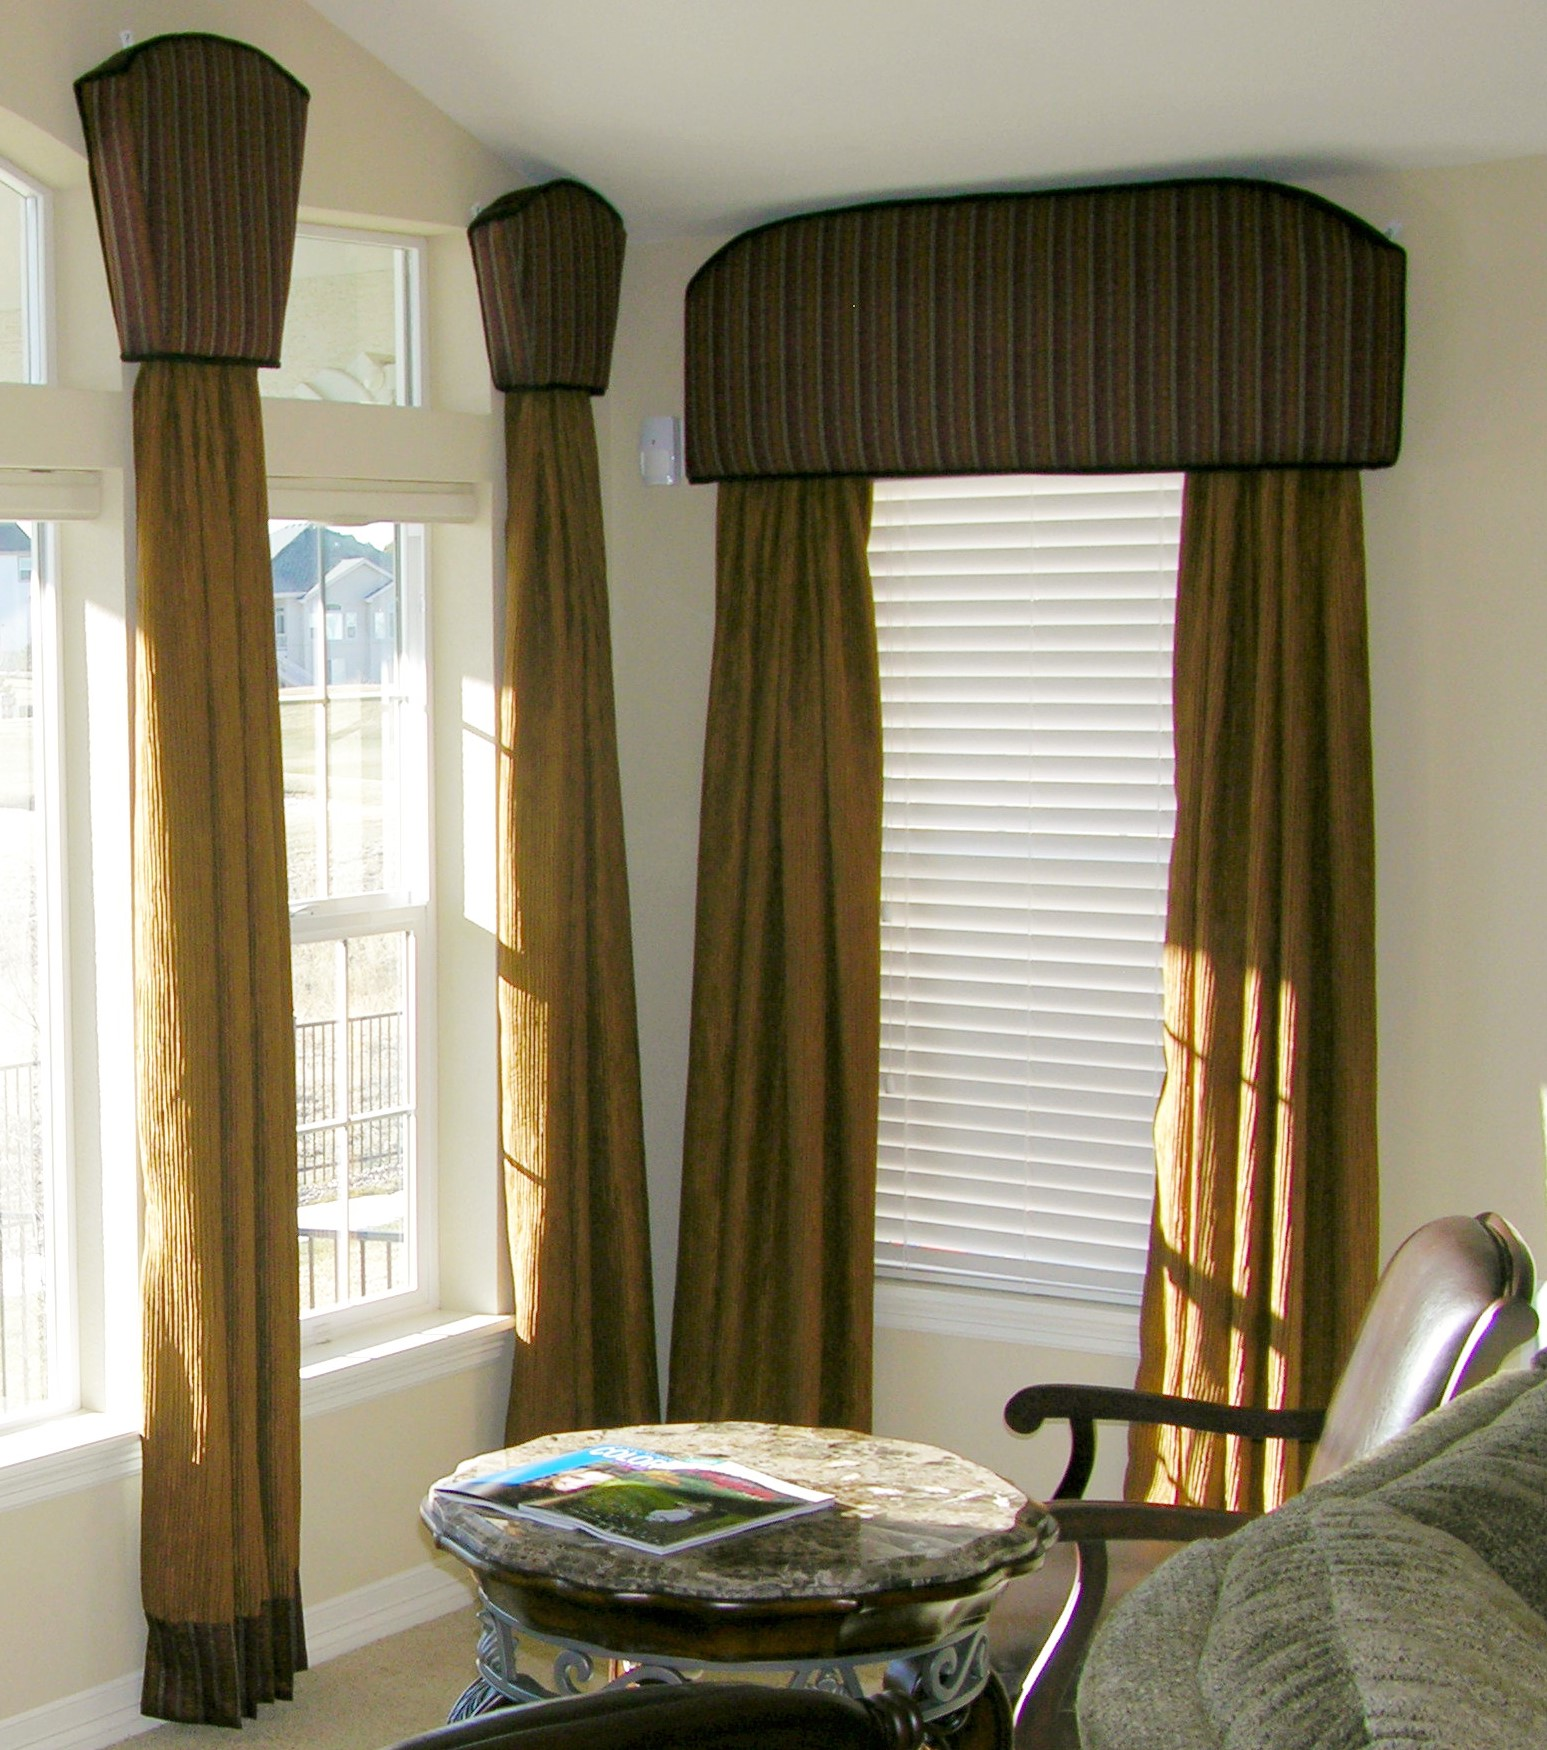 Curtain hung from rod pocket